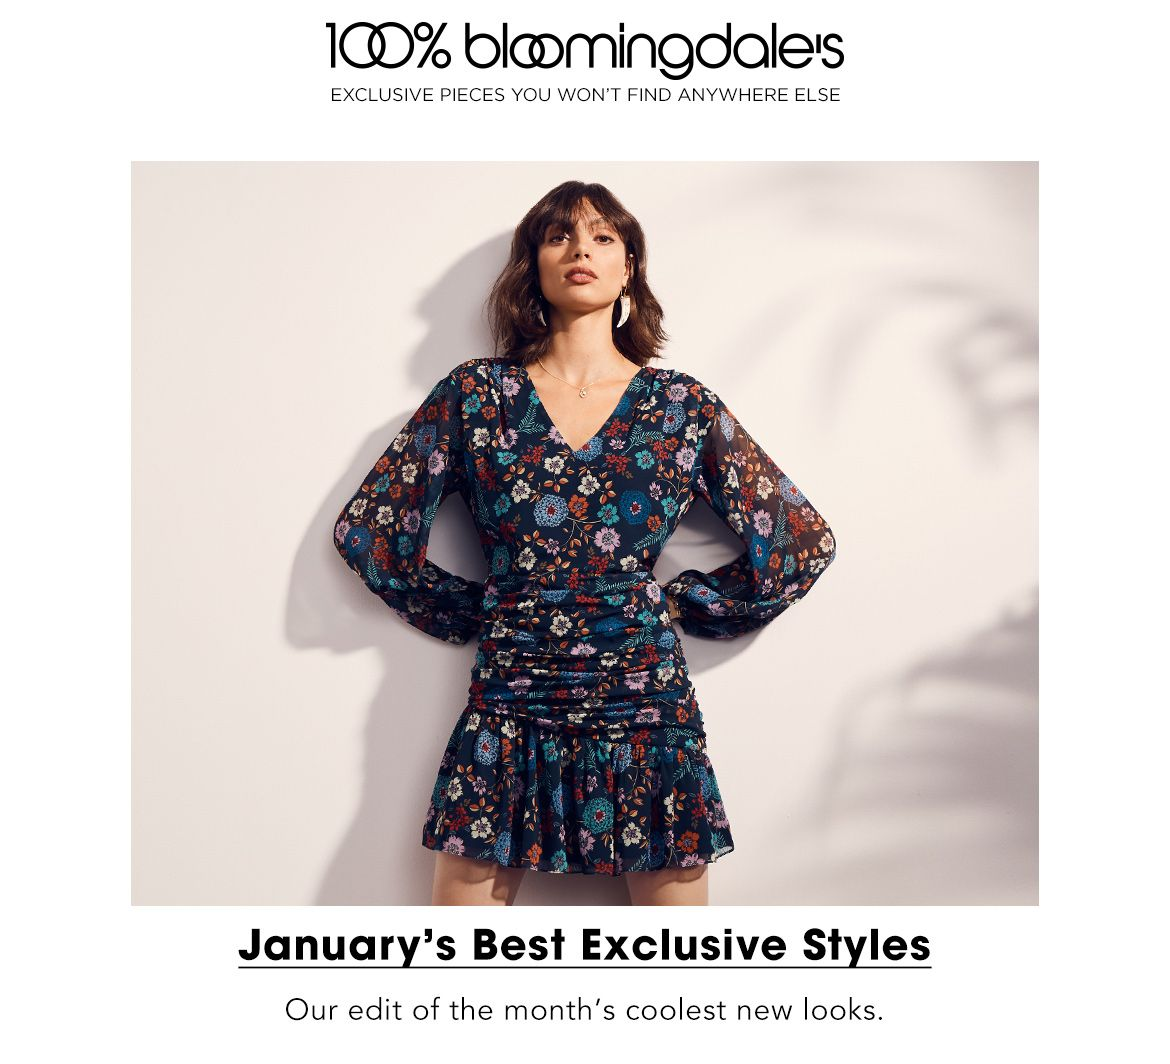 January's Best Exclusive Styles